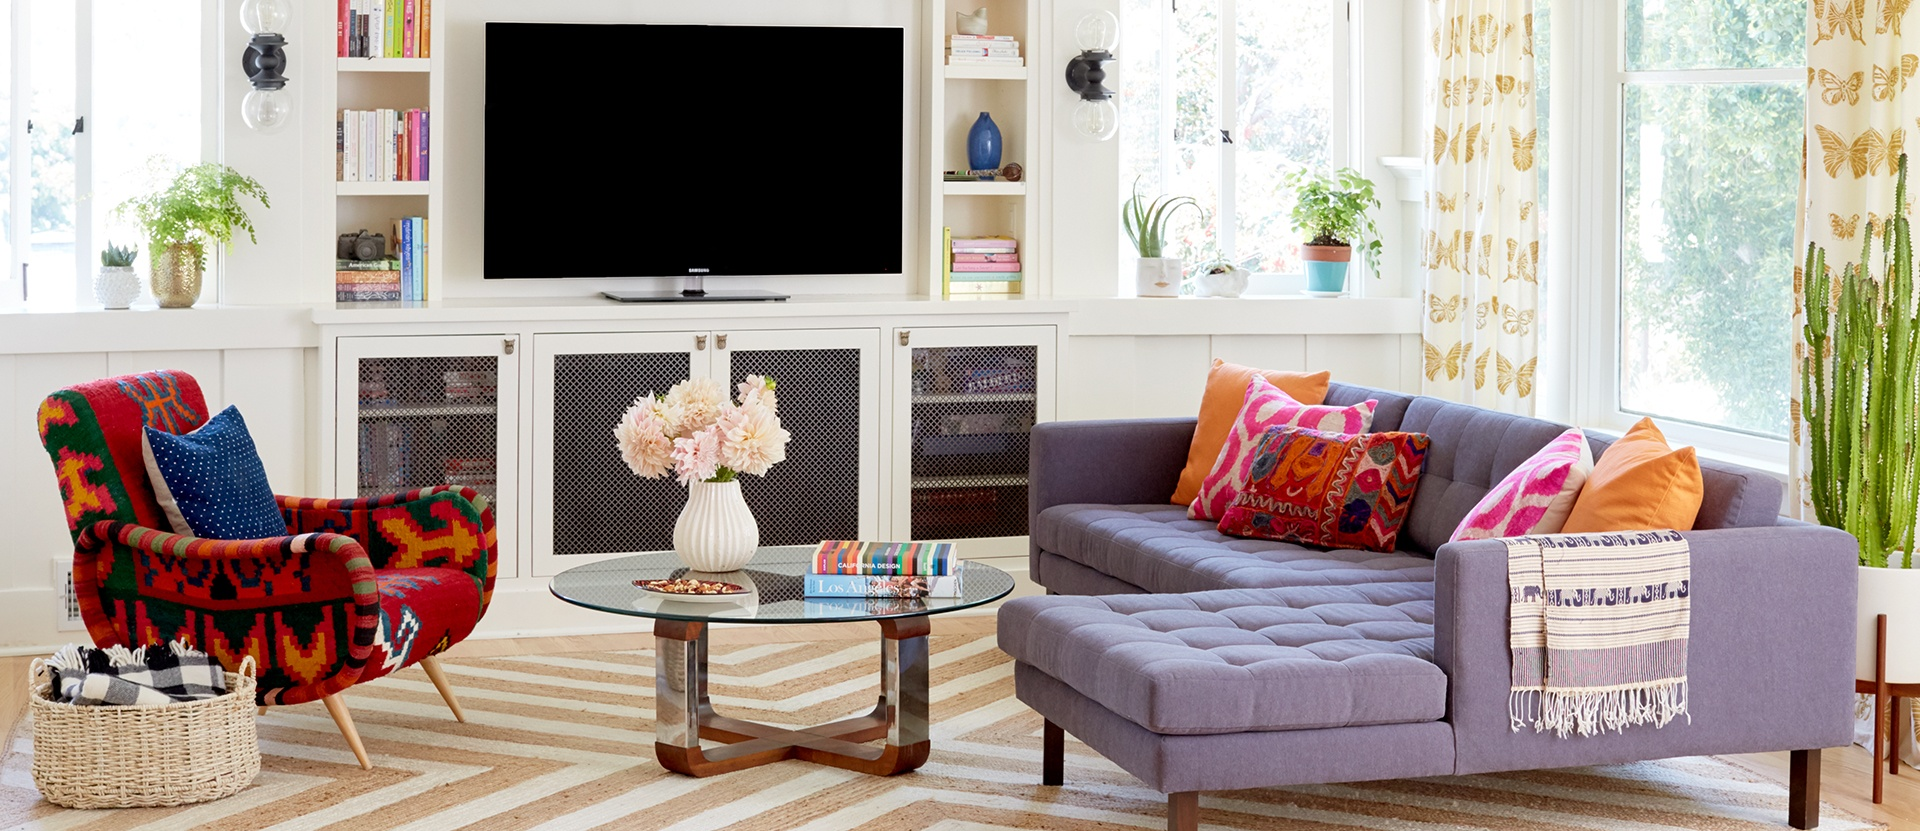 001-echo-park-living-room-hgtv-magazine-feature-anthropologie-kilim-chair-leila-los-angeles-modern-bohemian-bungalow-living-chevron-orange-rug-built-in-media-center-rejuvenation-lighting